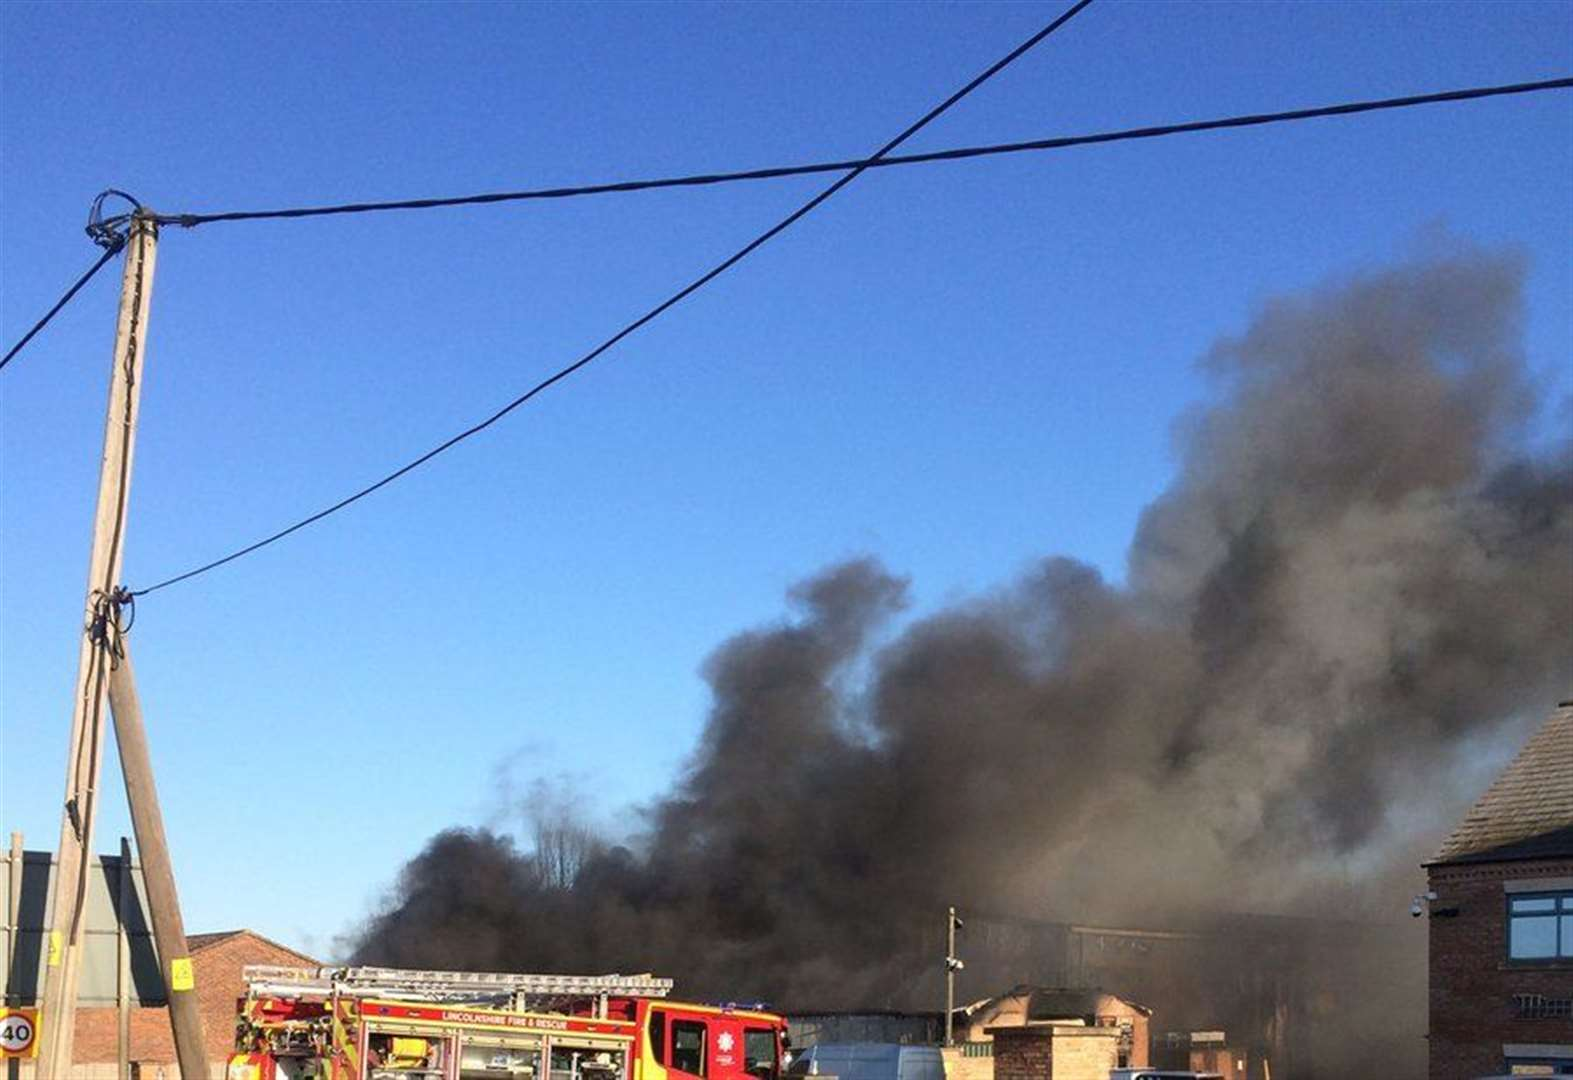 Firefighters tackling large blaze